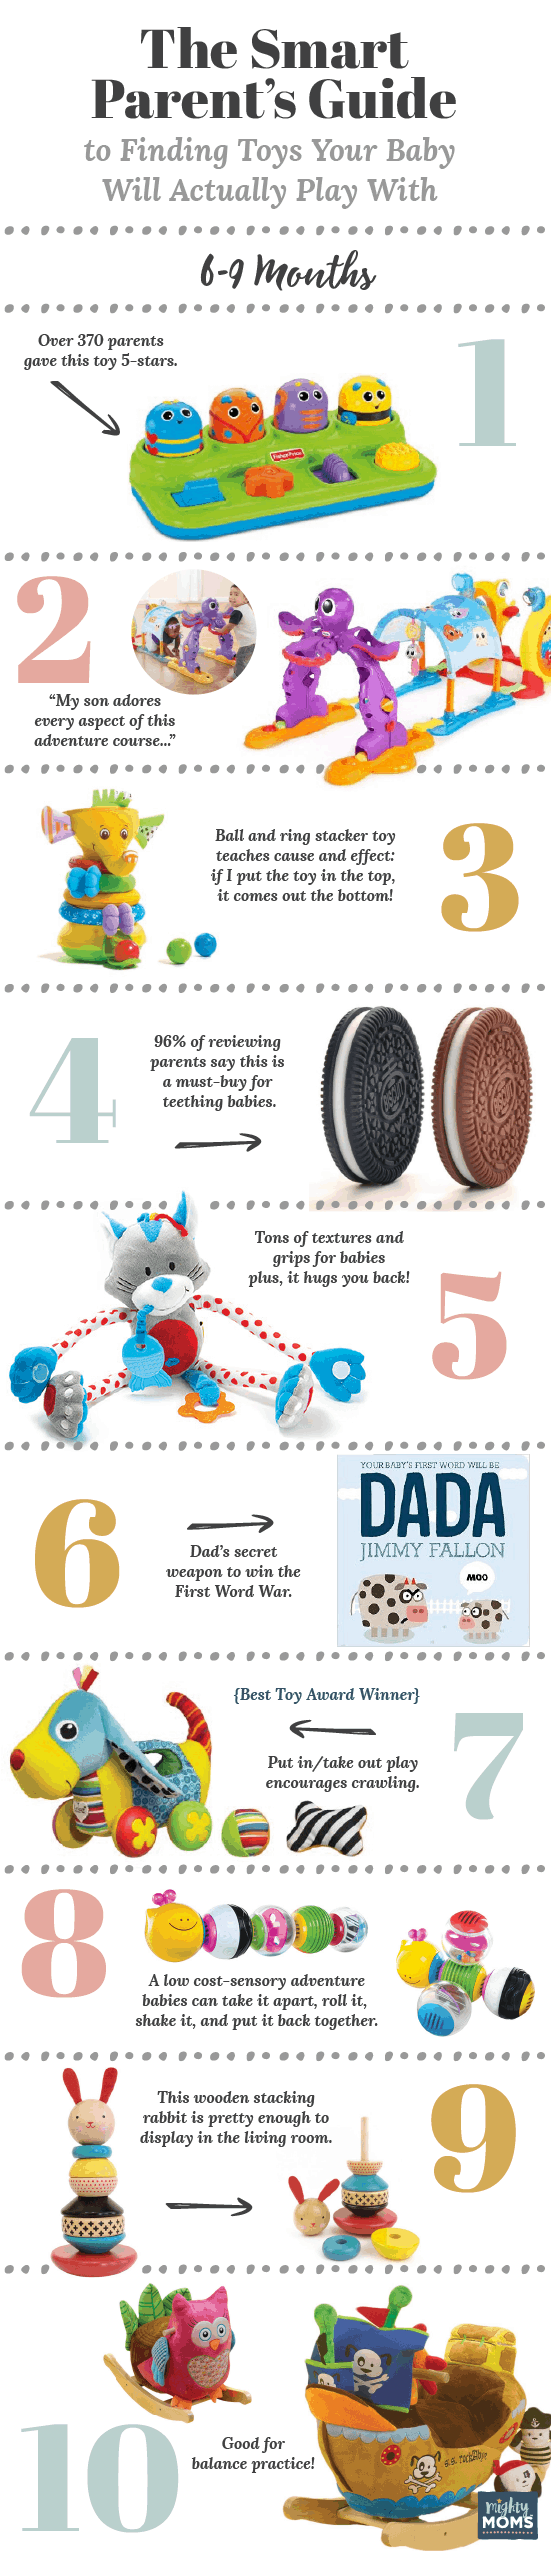 The Smart Parent's Guide to Finding Toys Your Baby Will Actually Play With - MightyMoms.club